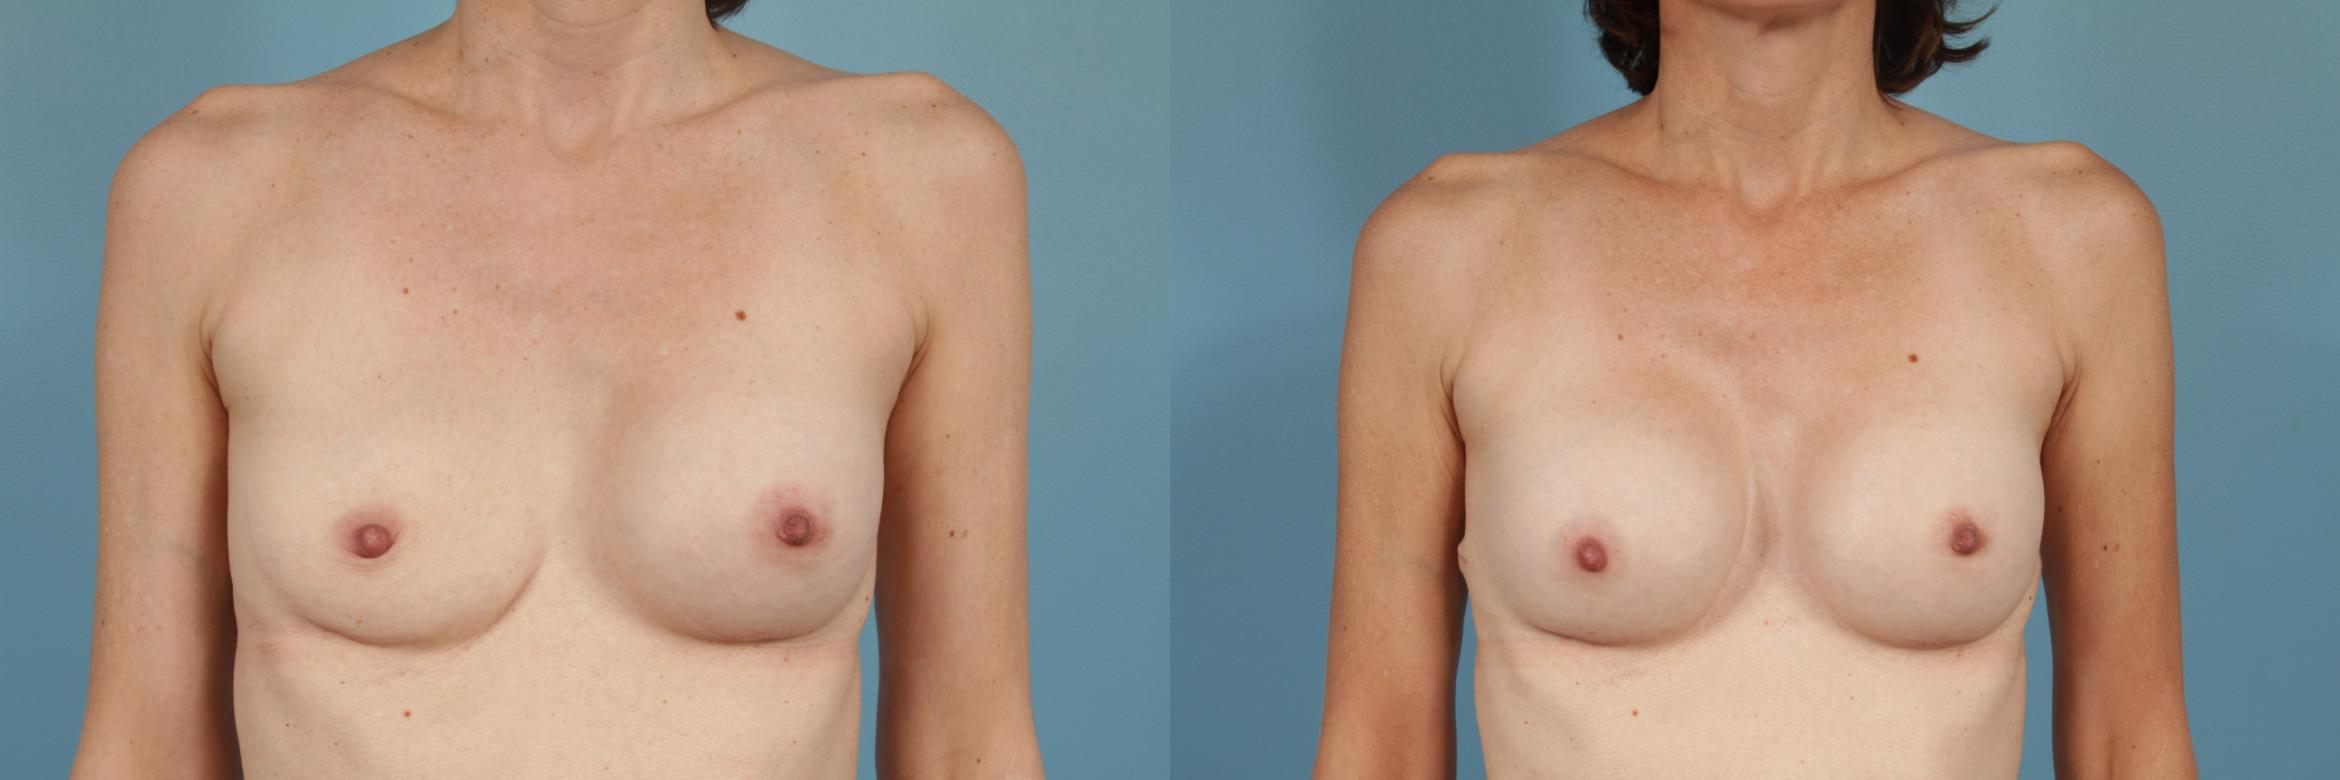 Breast Implant Replacement Case 193 Before & After View #1 | Chicago, IL | TLKM Plastic Surgery